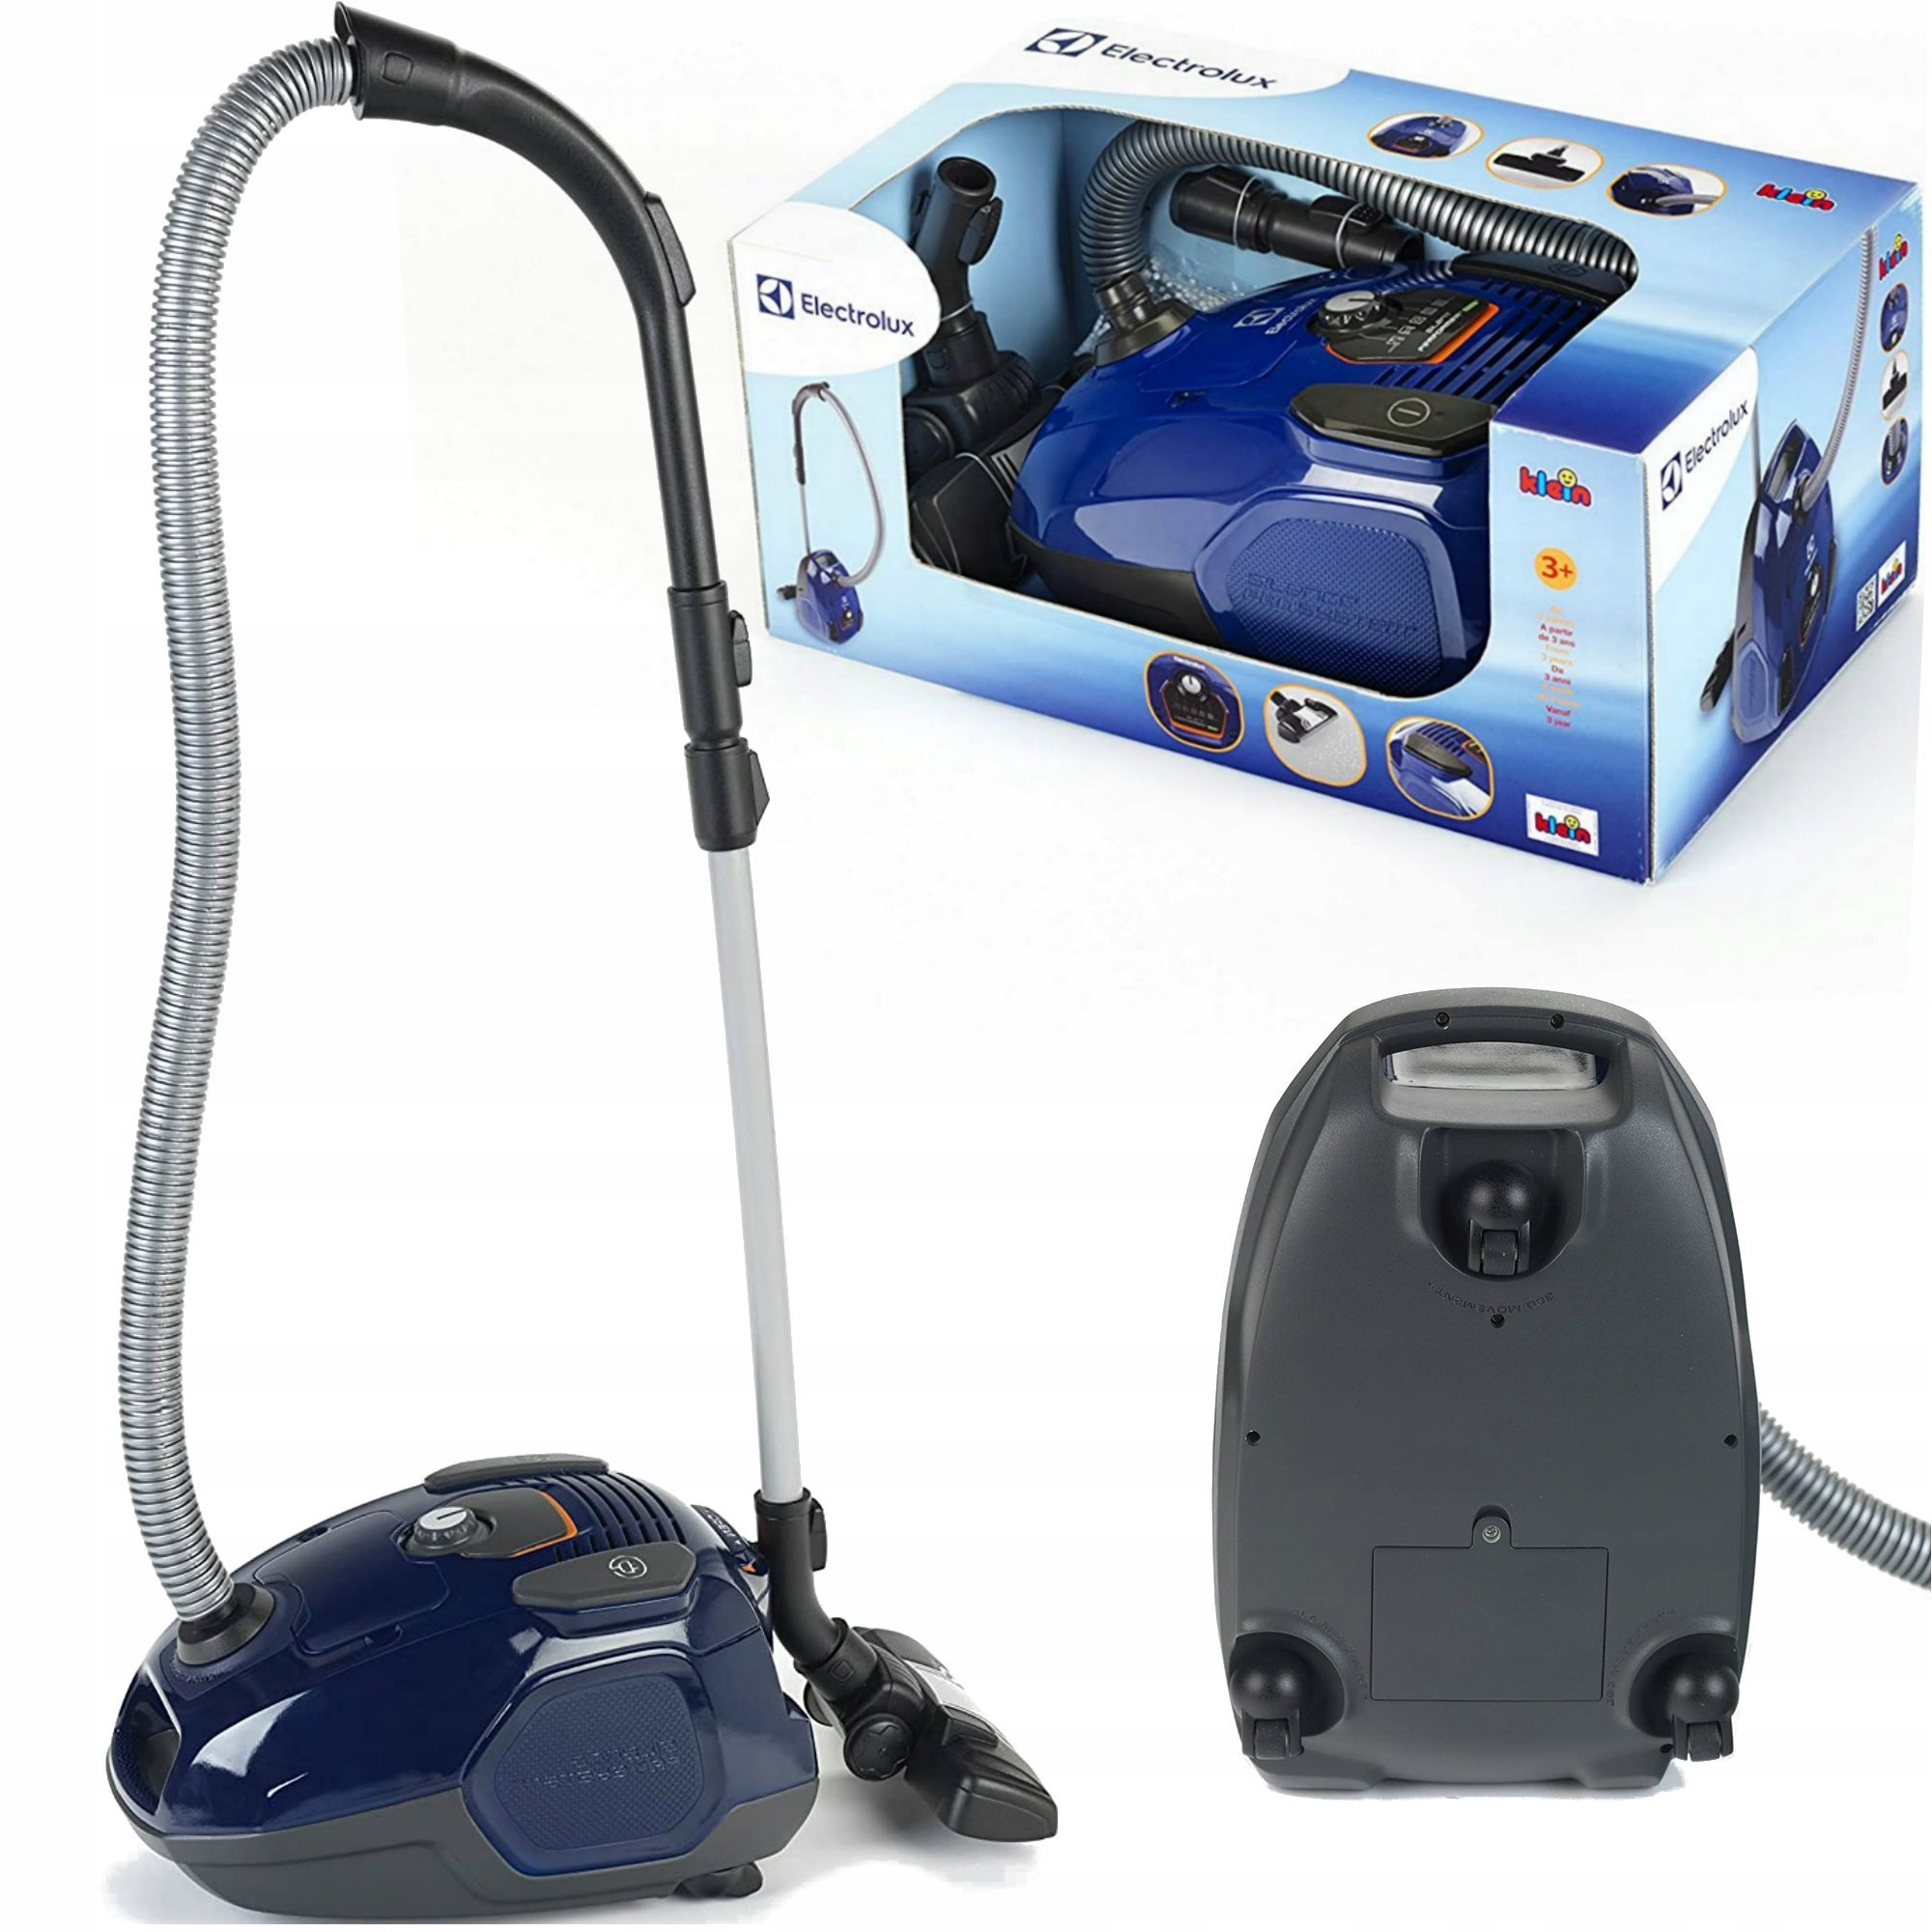 TOY ELECTROLUX VACUUM CLEANER PRE DETI + ZVUK